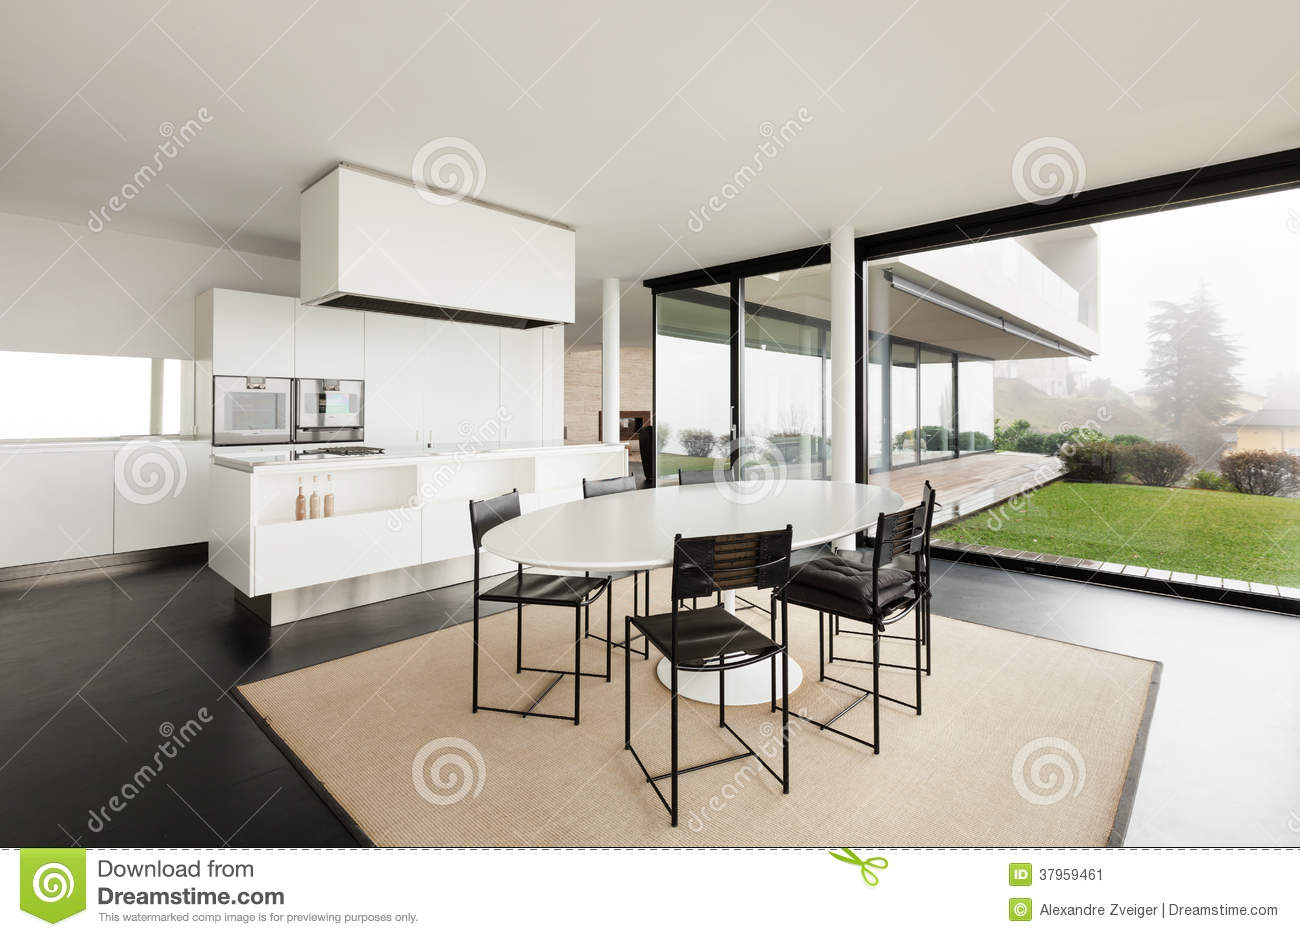 Architecture int rieur d 39 une villa moderne image stock for Villa moderne interieur plan